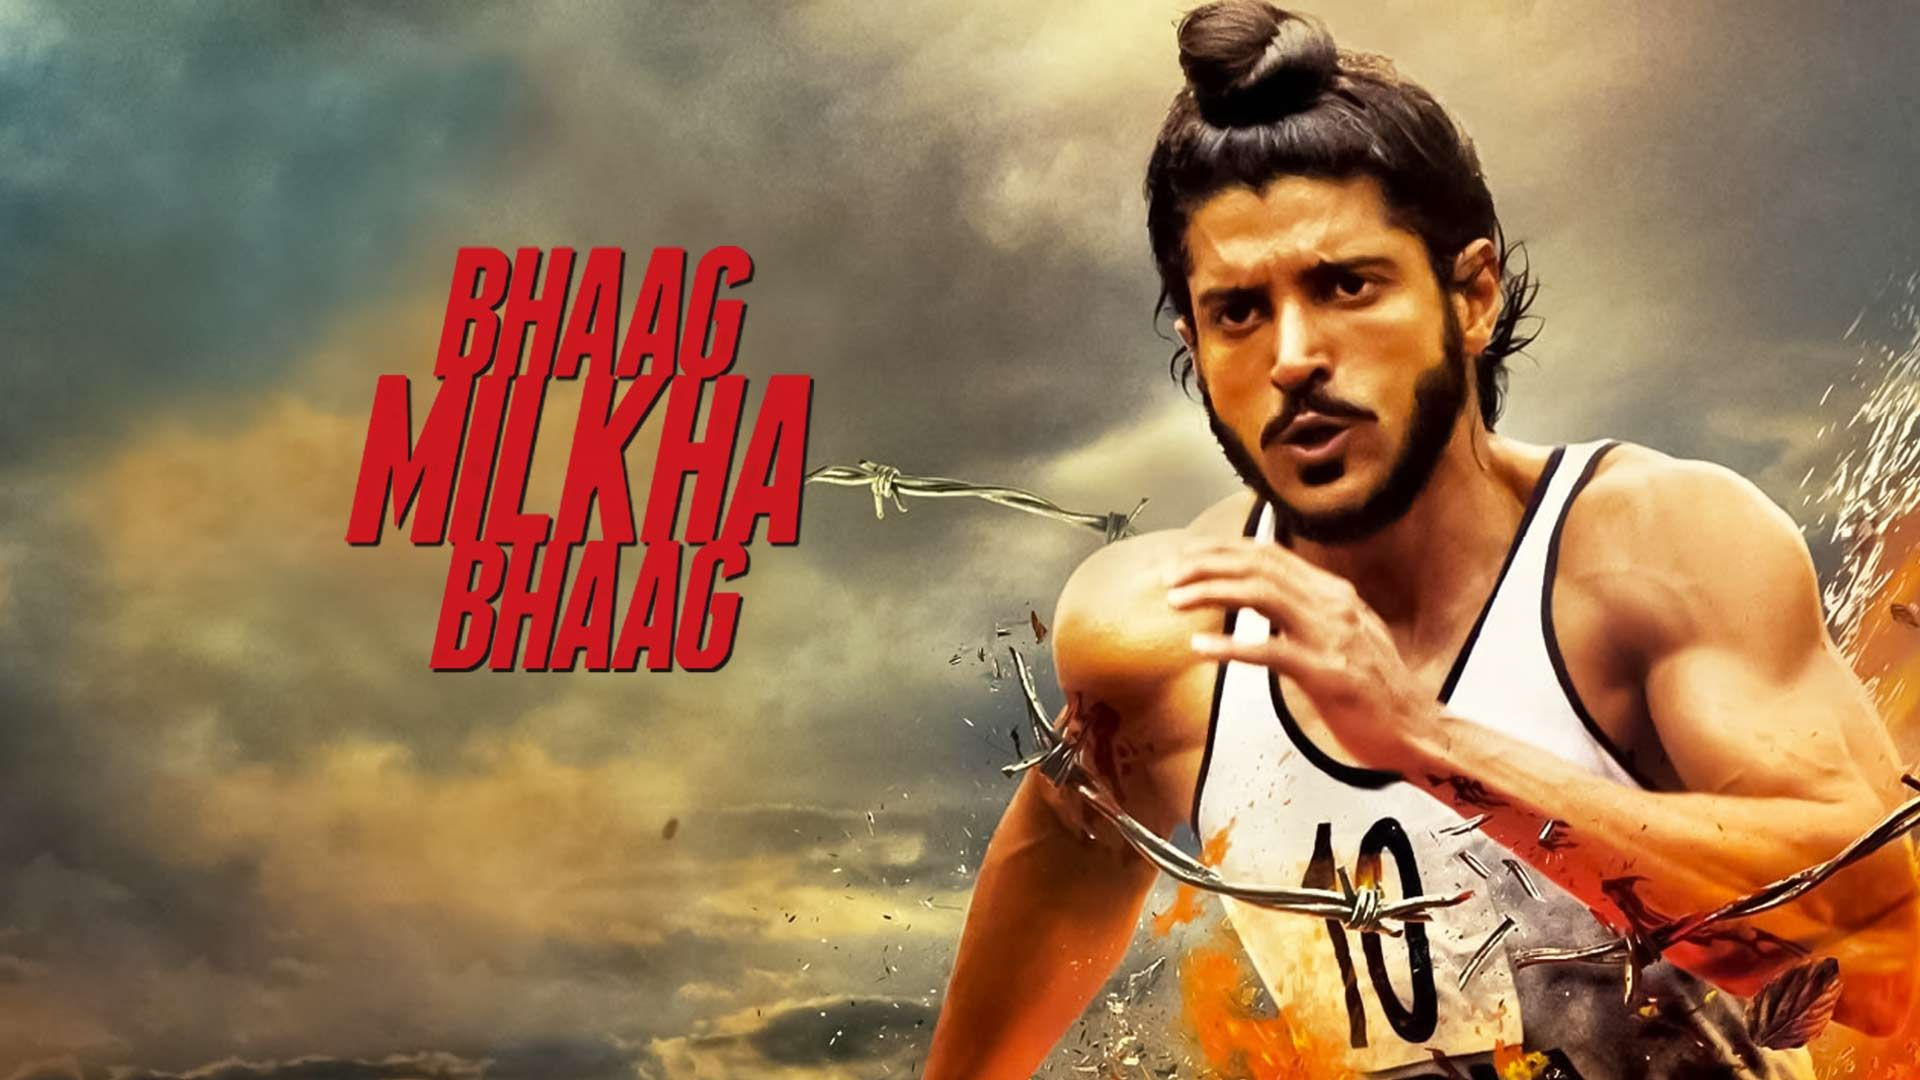 Photo of Bhag Milkha Bhag Full Movie Download 480p For Free [ 468MB ]